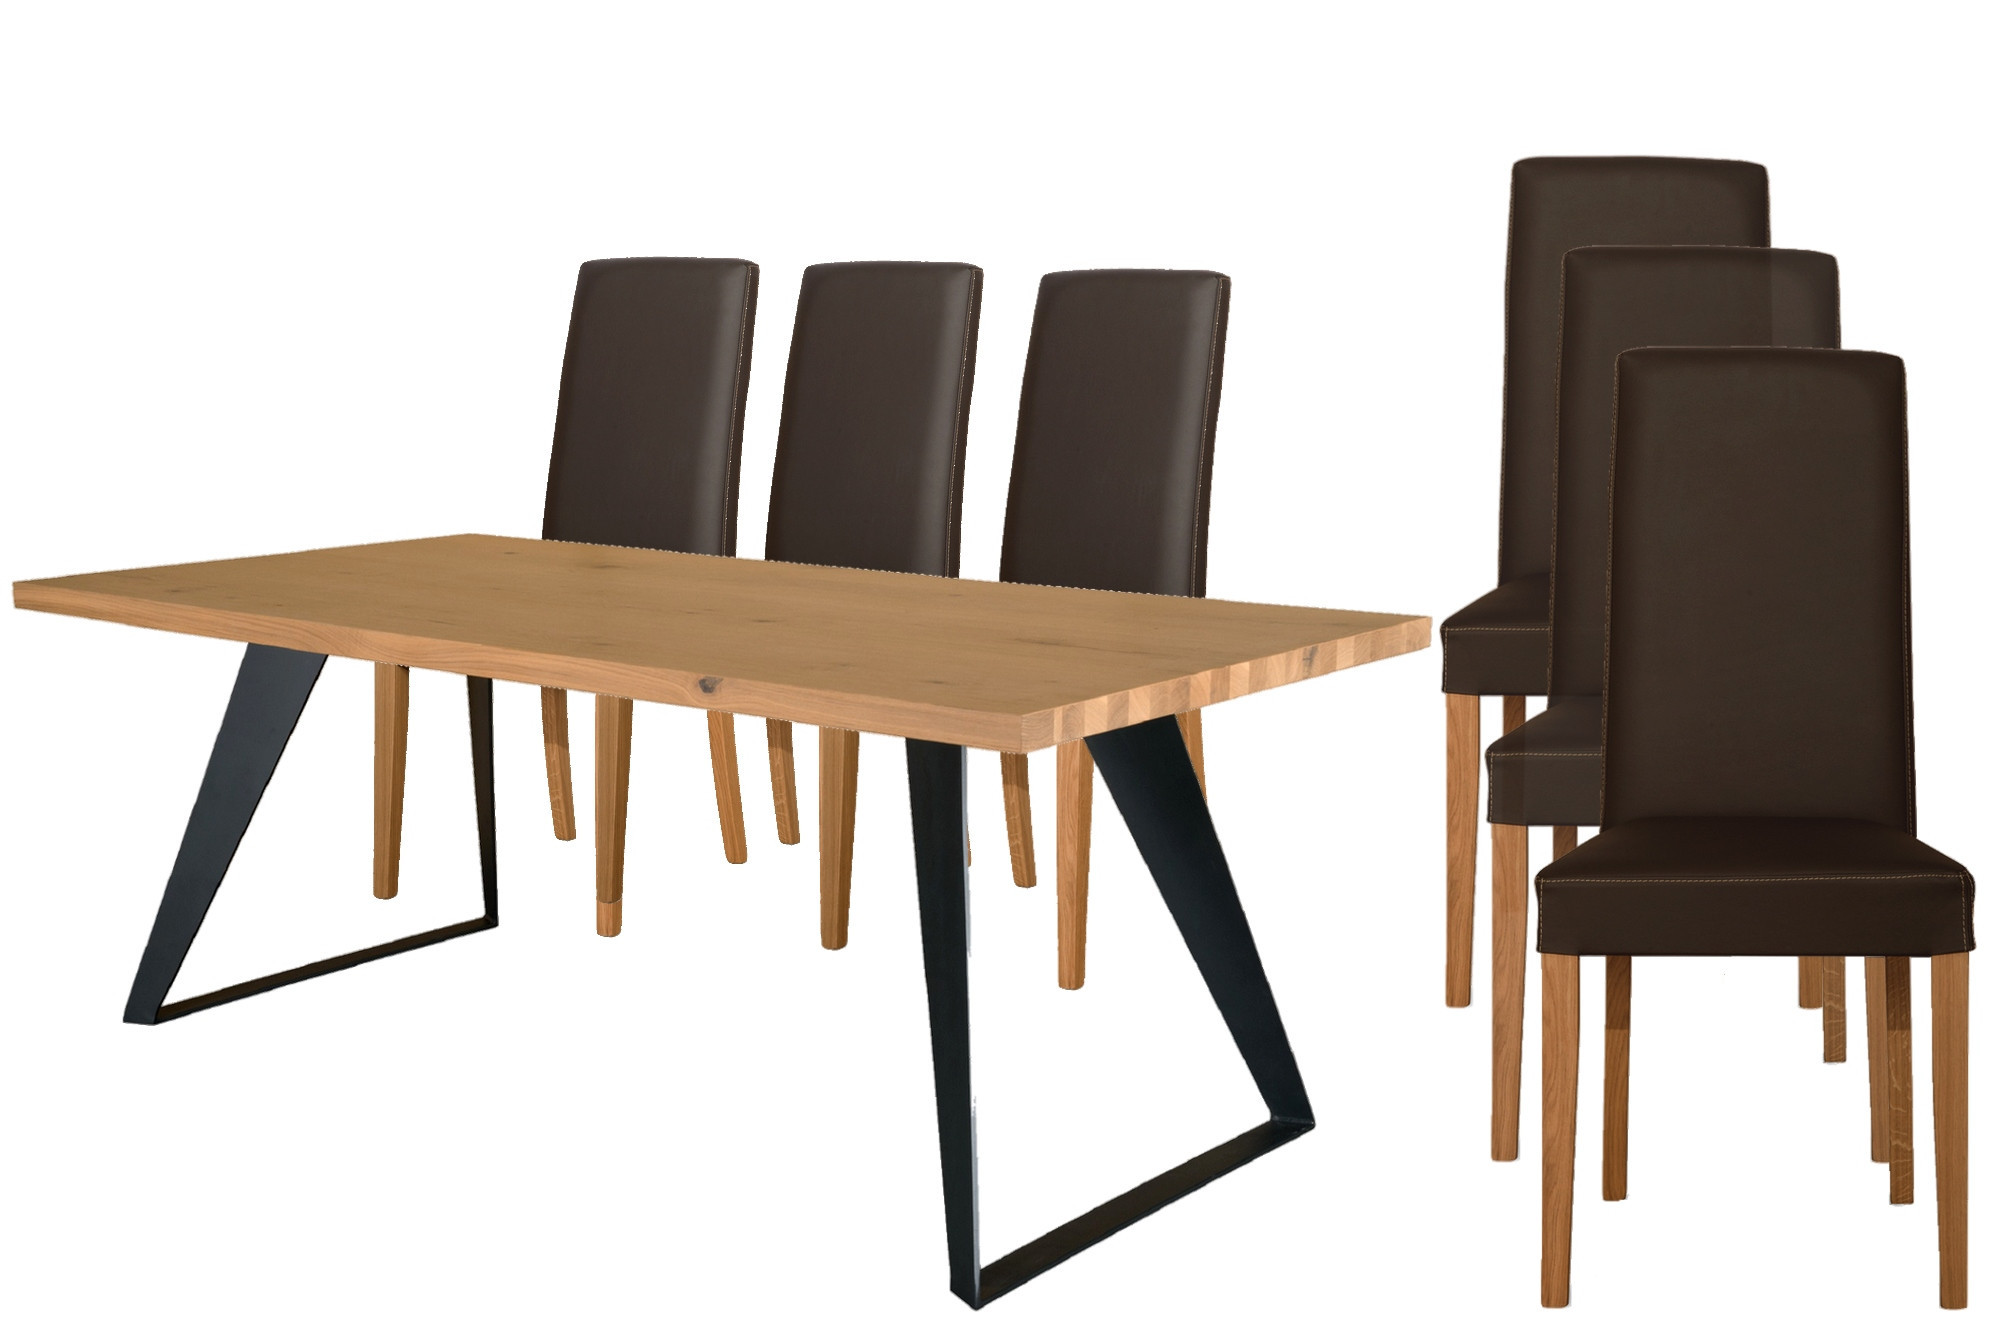 6 Chaises Ensemble Table Rectangulaire Filigram 6 Chaises Nancy Hellin